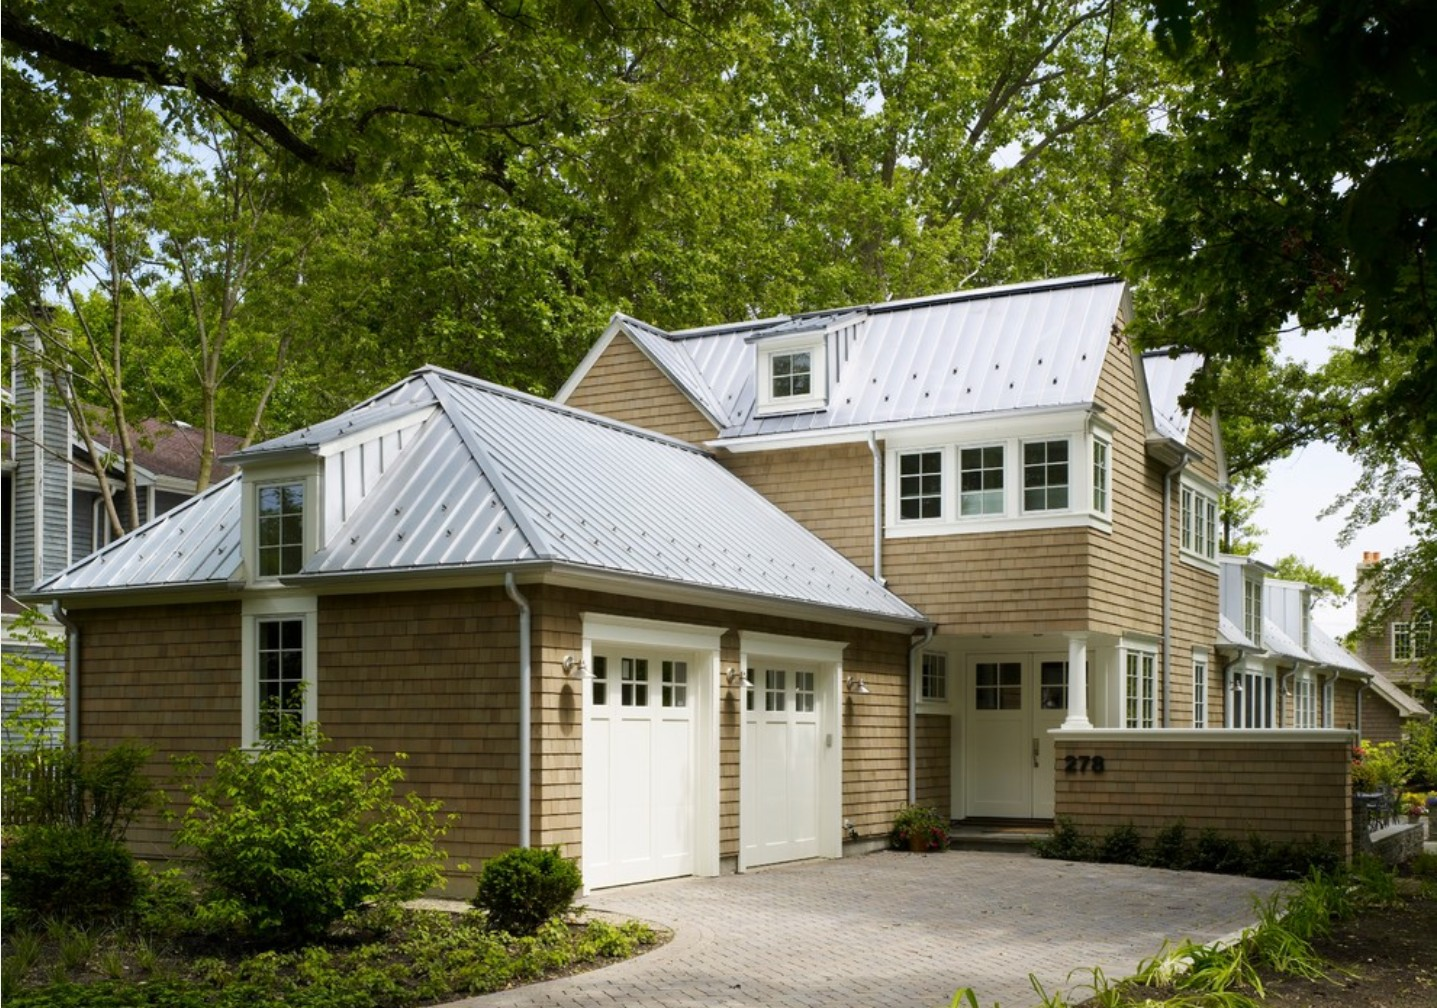 Metal shingles vs standing seam metal roof costs for Images of houses with metal roofs